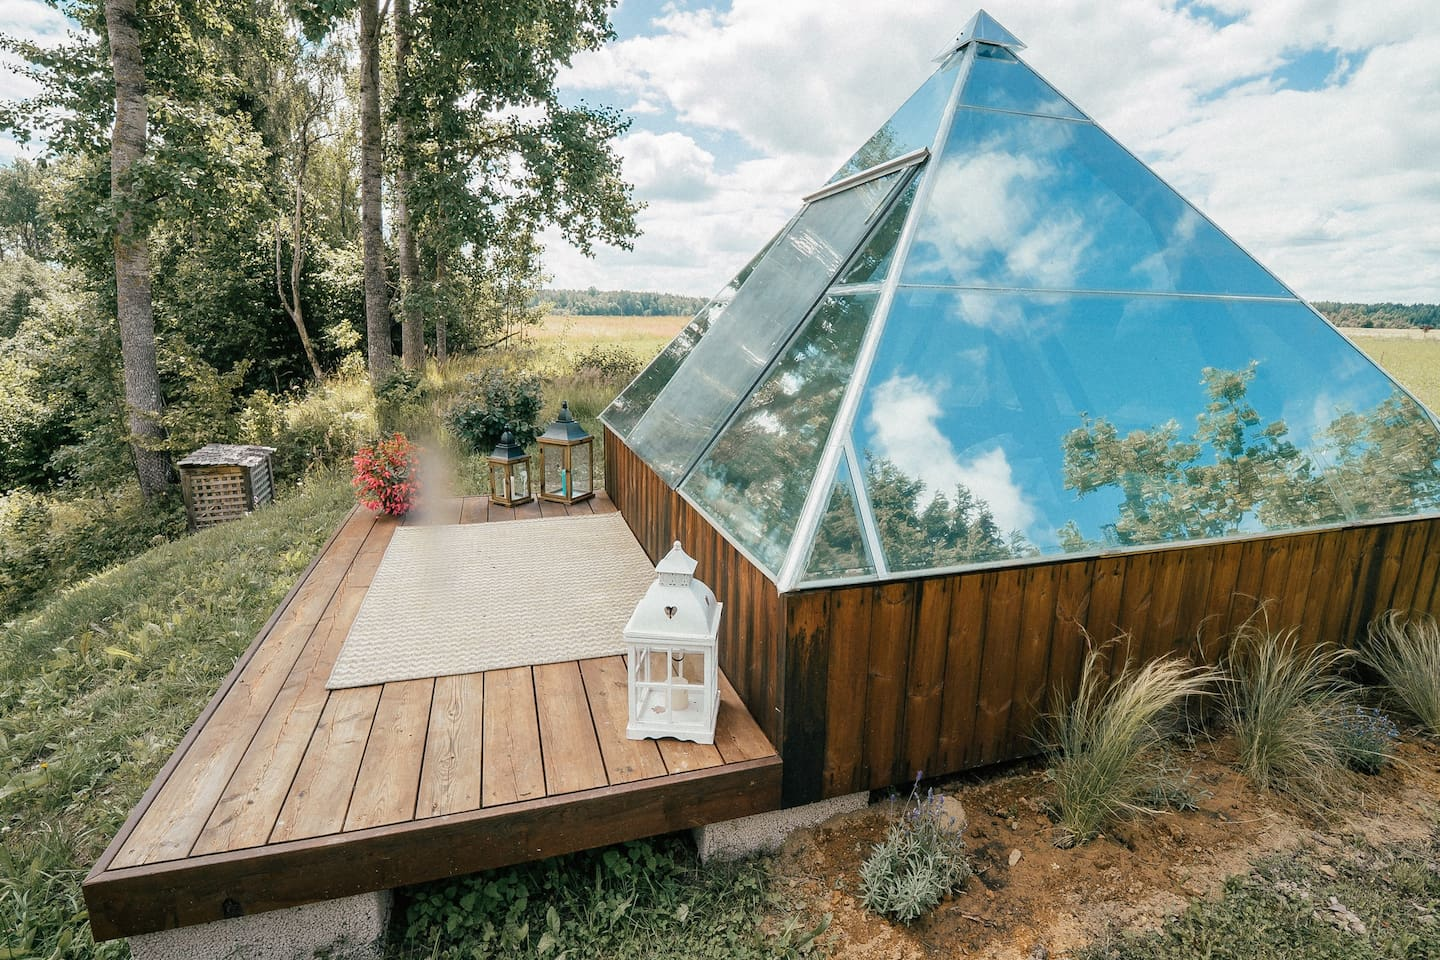 Our small glass pyramid on the shore of the Peetri river.